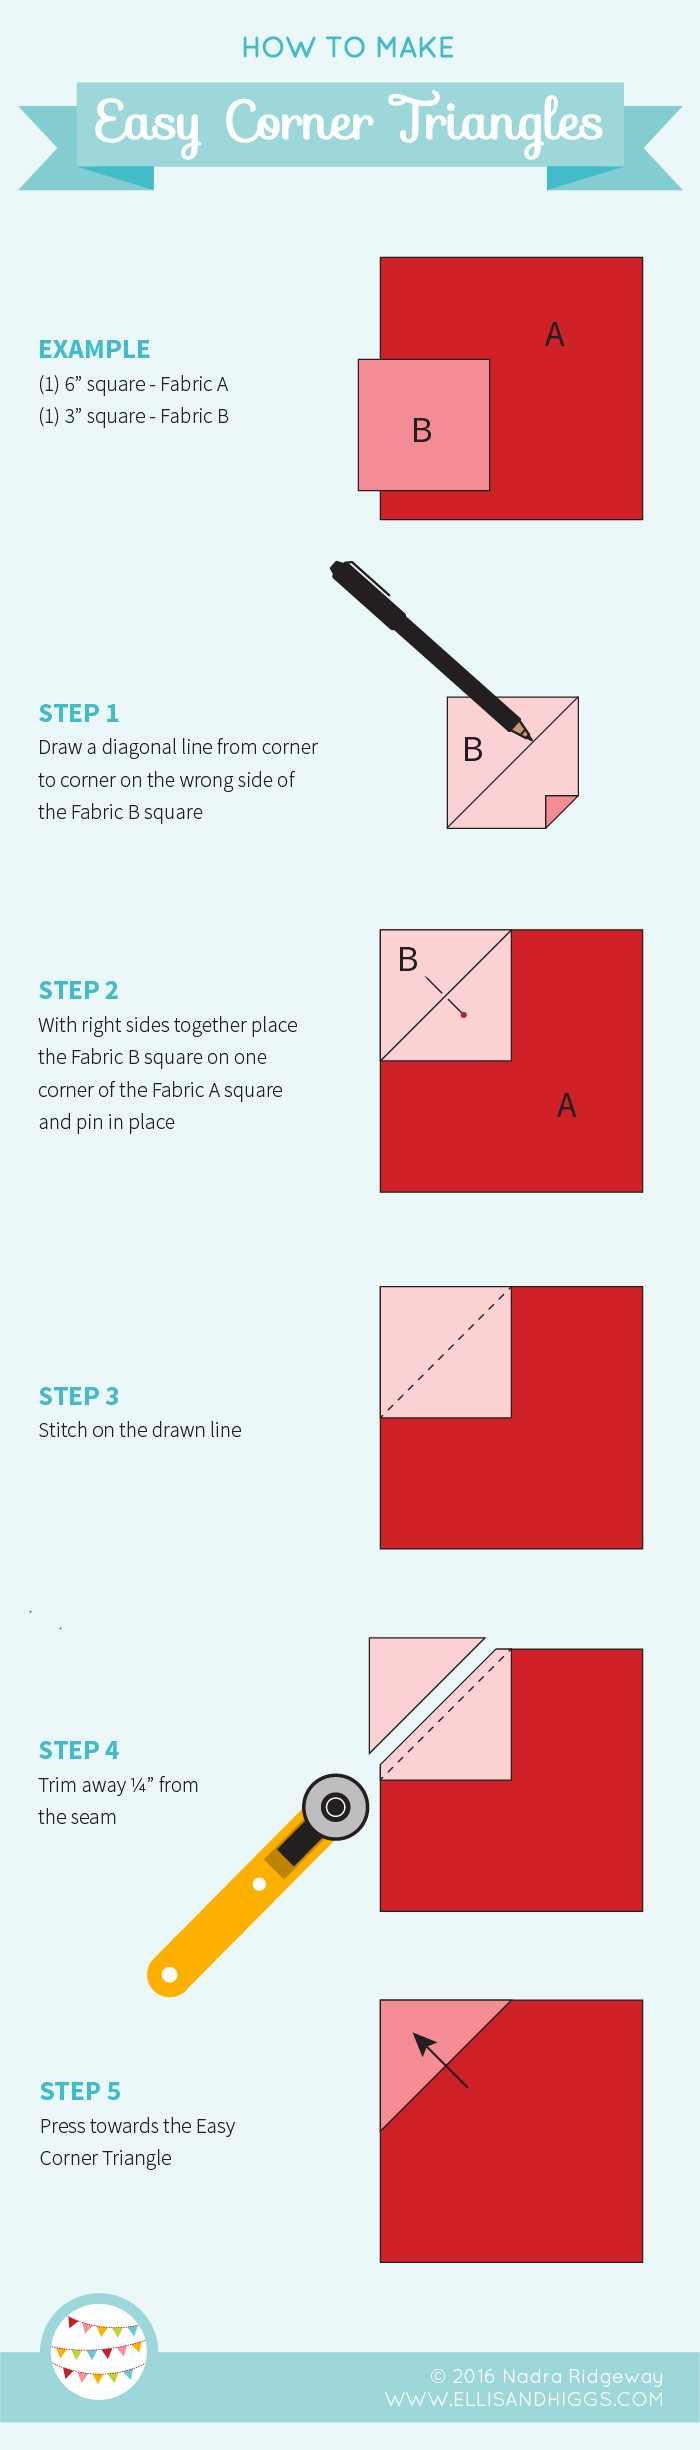 How to make Easy Corner Triangles a Tutorial by Nadra Ridgeway of ellis & higgs